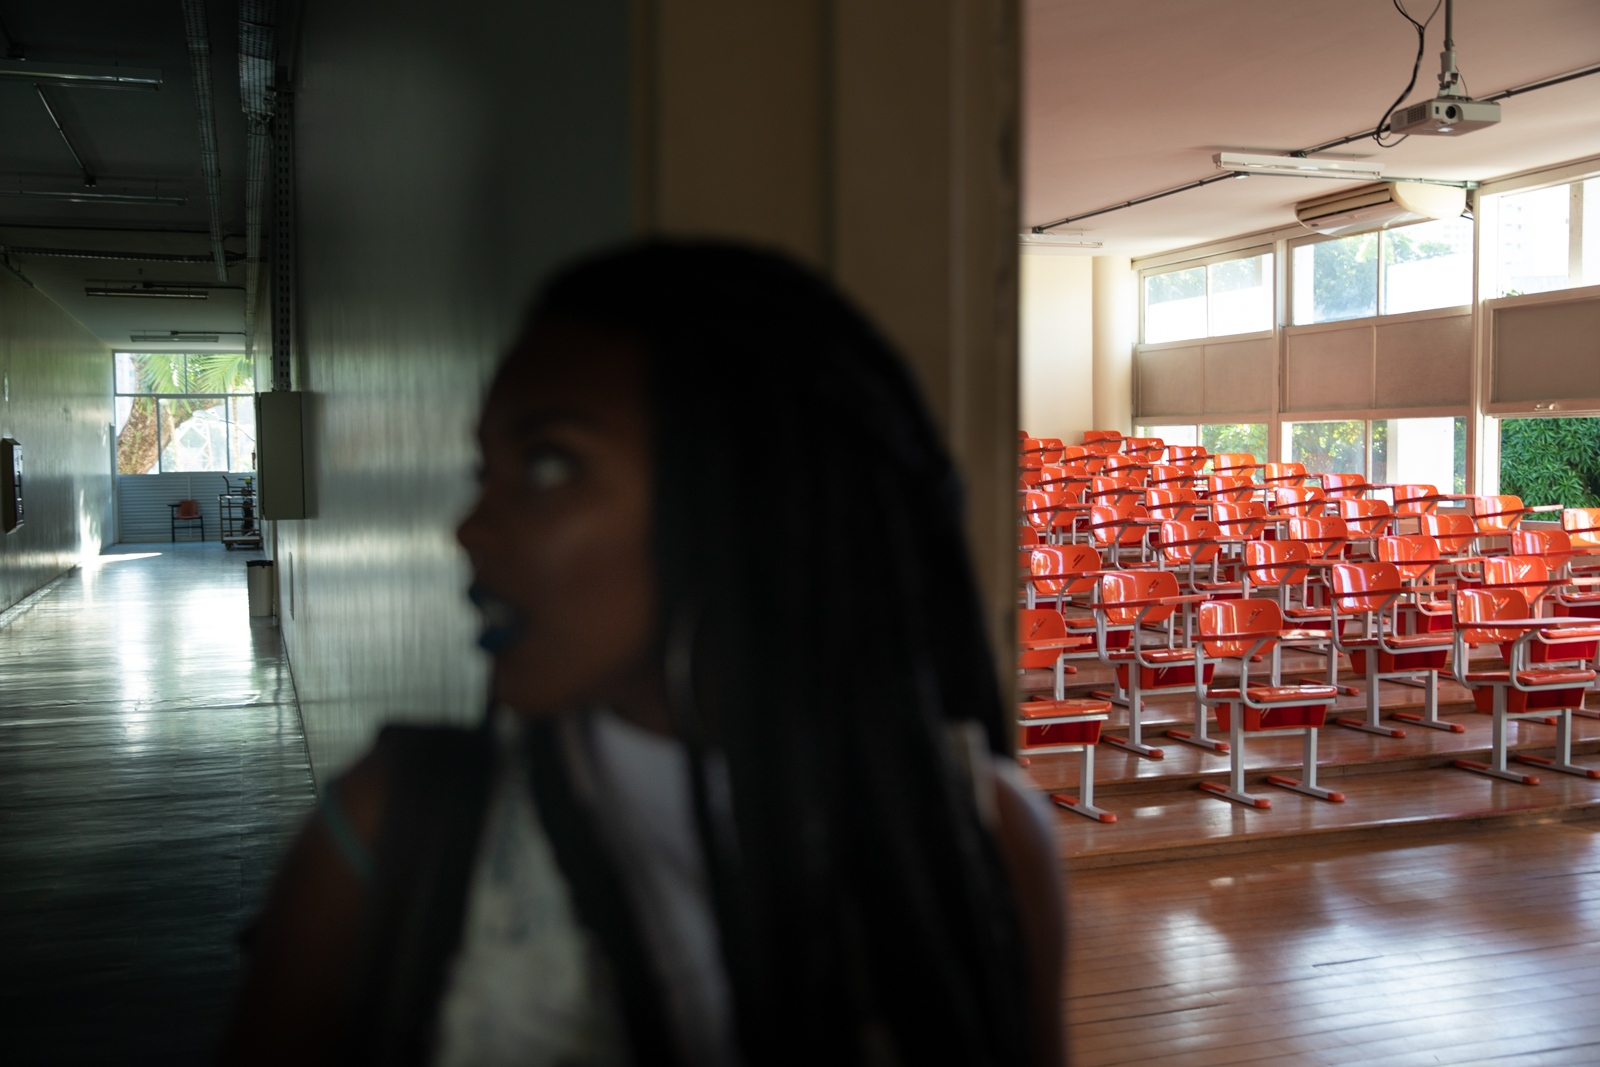 Samira Soares, 23, student at Humanities course, stands at the door of a university empty room of the University of Bahia. Born and raised in the countryside of Bahia, daughter of a housekeeper, Samira came to Salvador to try a better chance then her mother, trying to scape the housekeeper faith of so many young Black Women of Brazil.  Without money to studies and bills to live in Salvador, Samira entered University with the help of some student grants of the old Government and thank to this financial support she was able to pay her life and keep her University studies.  Since 3 years ago and today, almost all of the student grants and programs to help young Brazilians to study are being closed and failing to disappear. Thousands of young, many from Afro-Descendances, are losing their opportunity to construct a better life.   Salvador, Bahia.